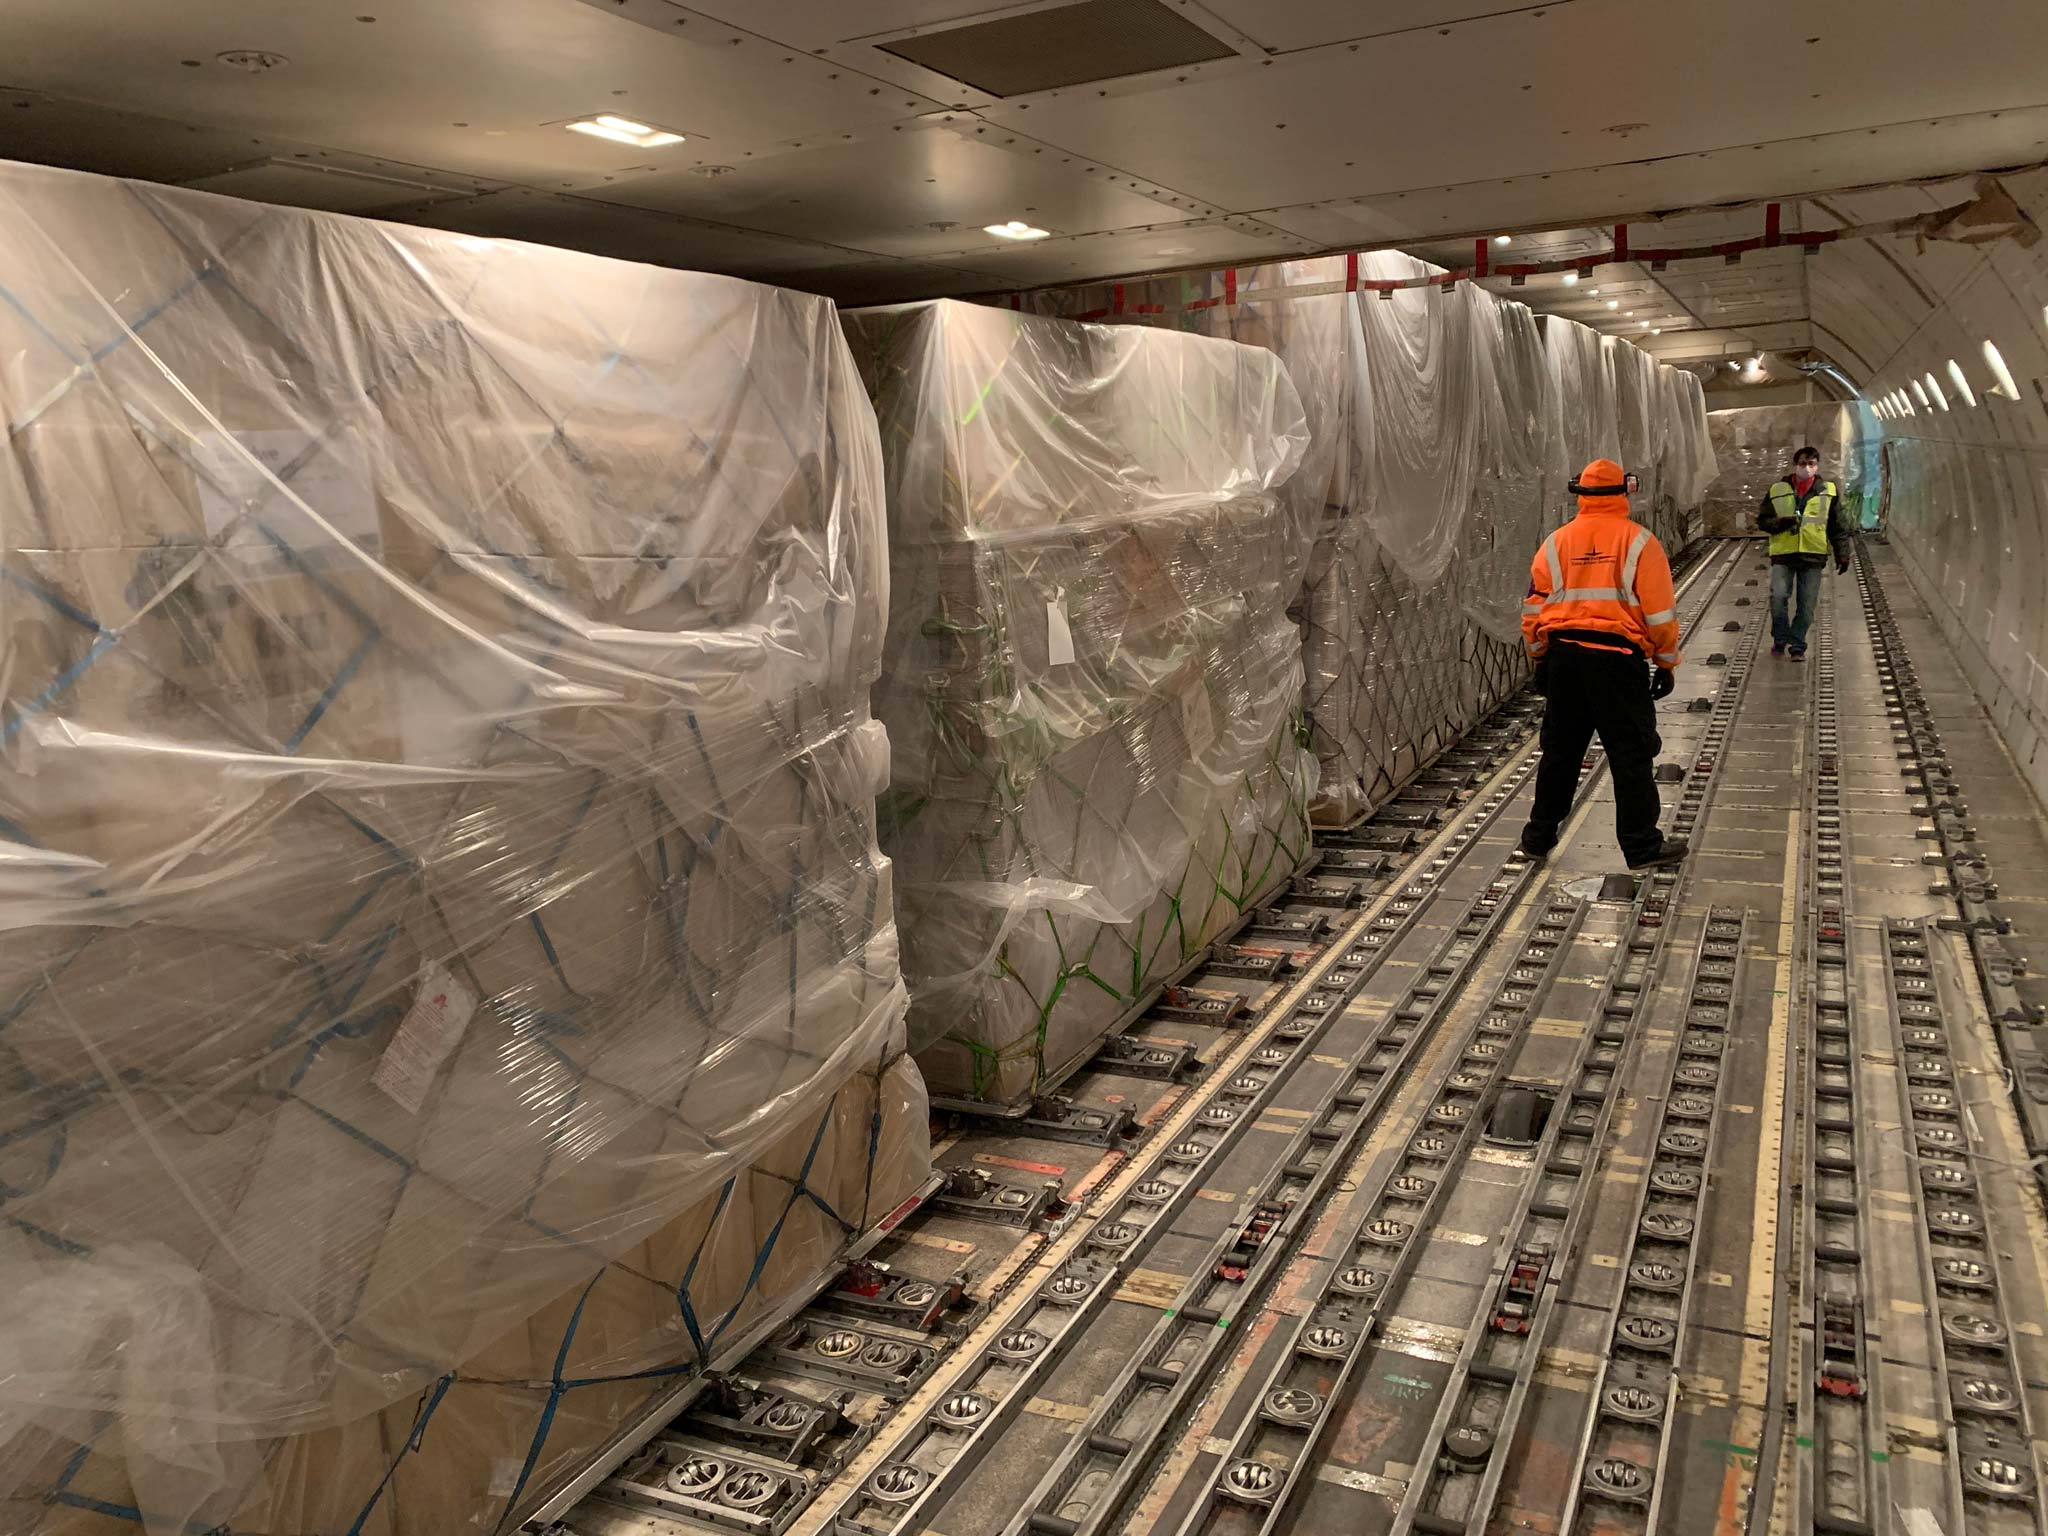 Atlas Air's dedicated charter from SFO to Shanghai carrying nearly 65 tonnes of PPE, including 4.5 million face masks, 121,300 surgical gowns and 16,000 hazmat suits.